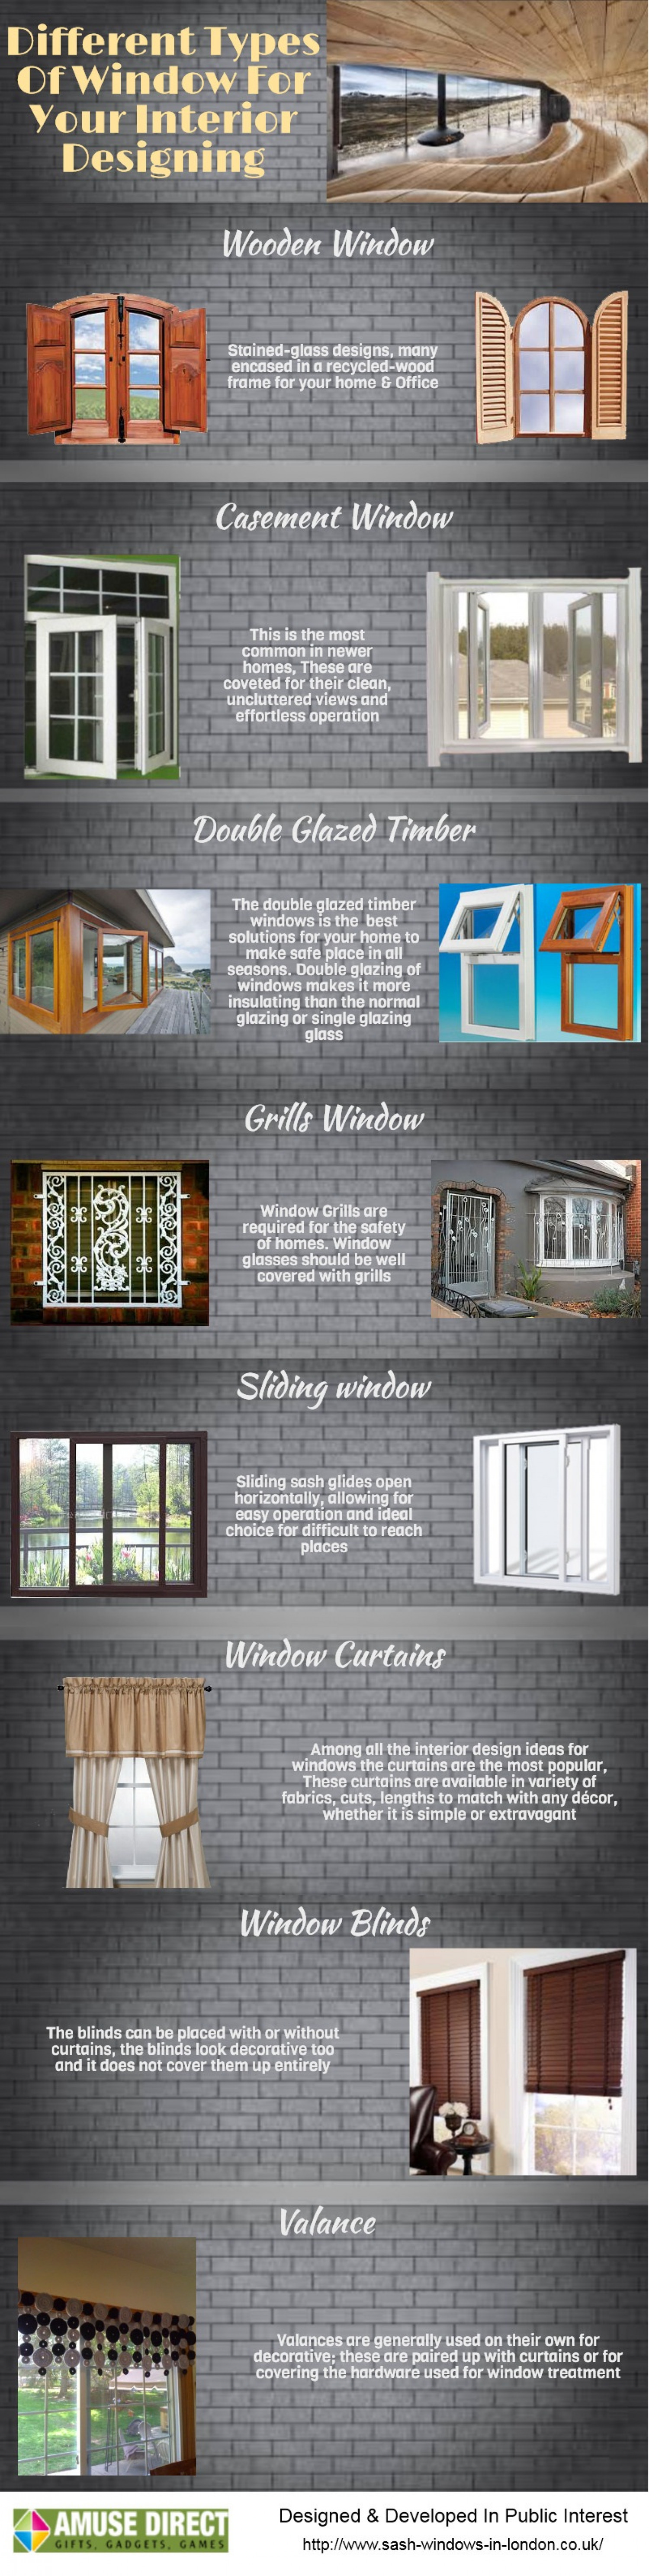 Different Types Of Window For Your Interior Designing Visual Ly